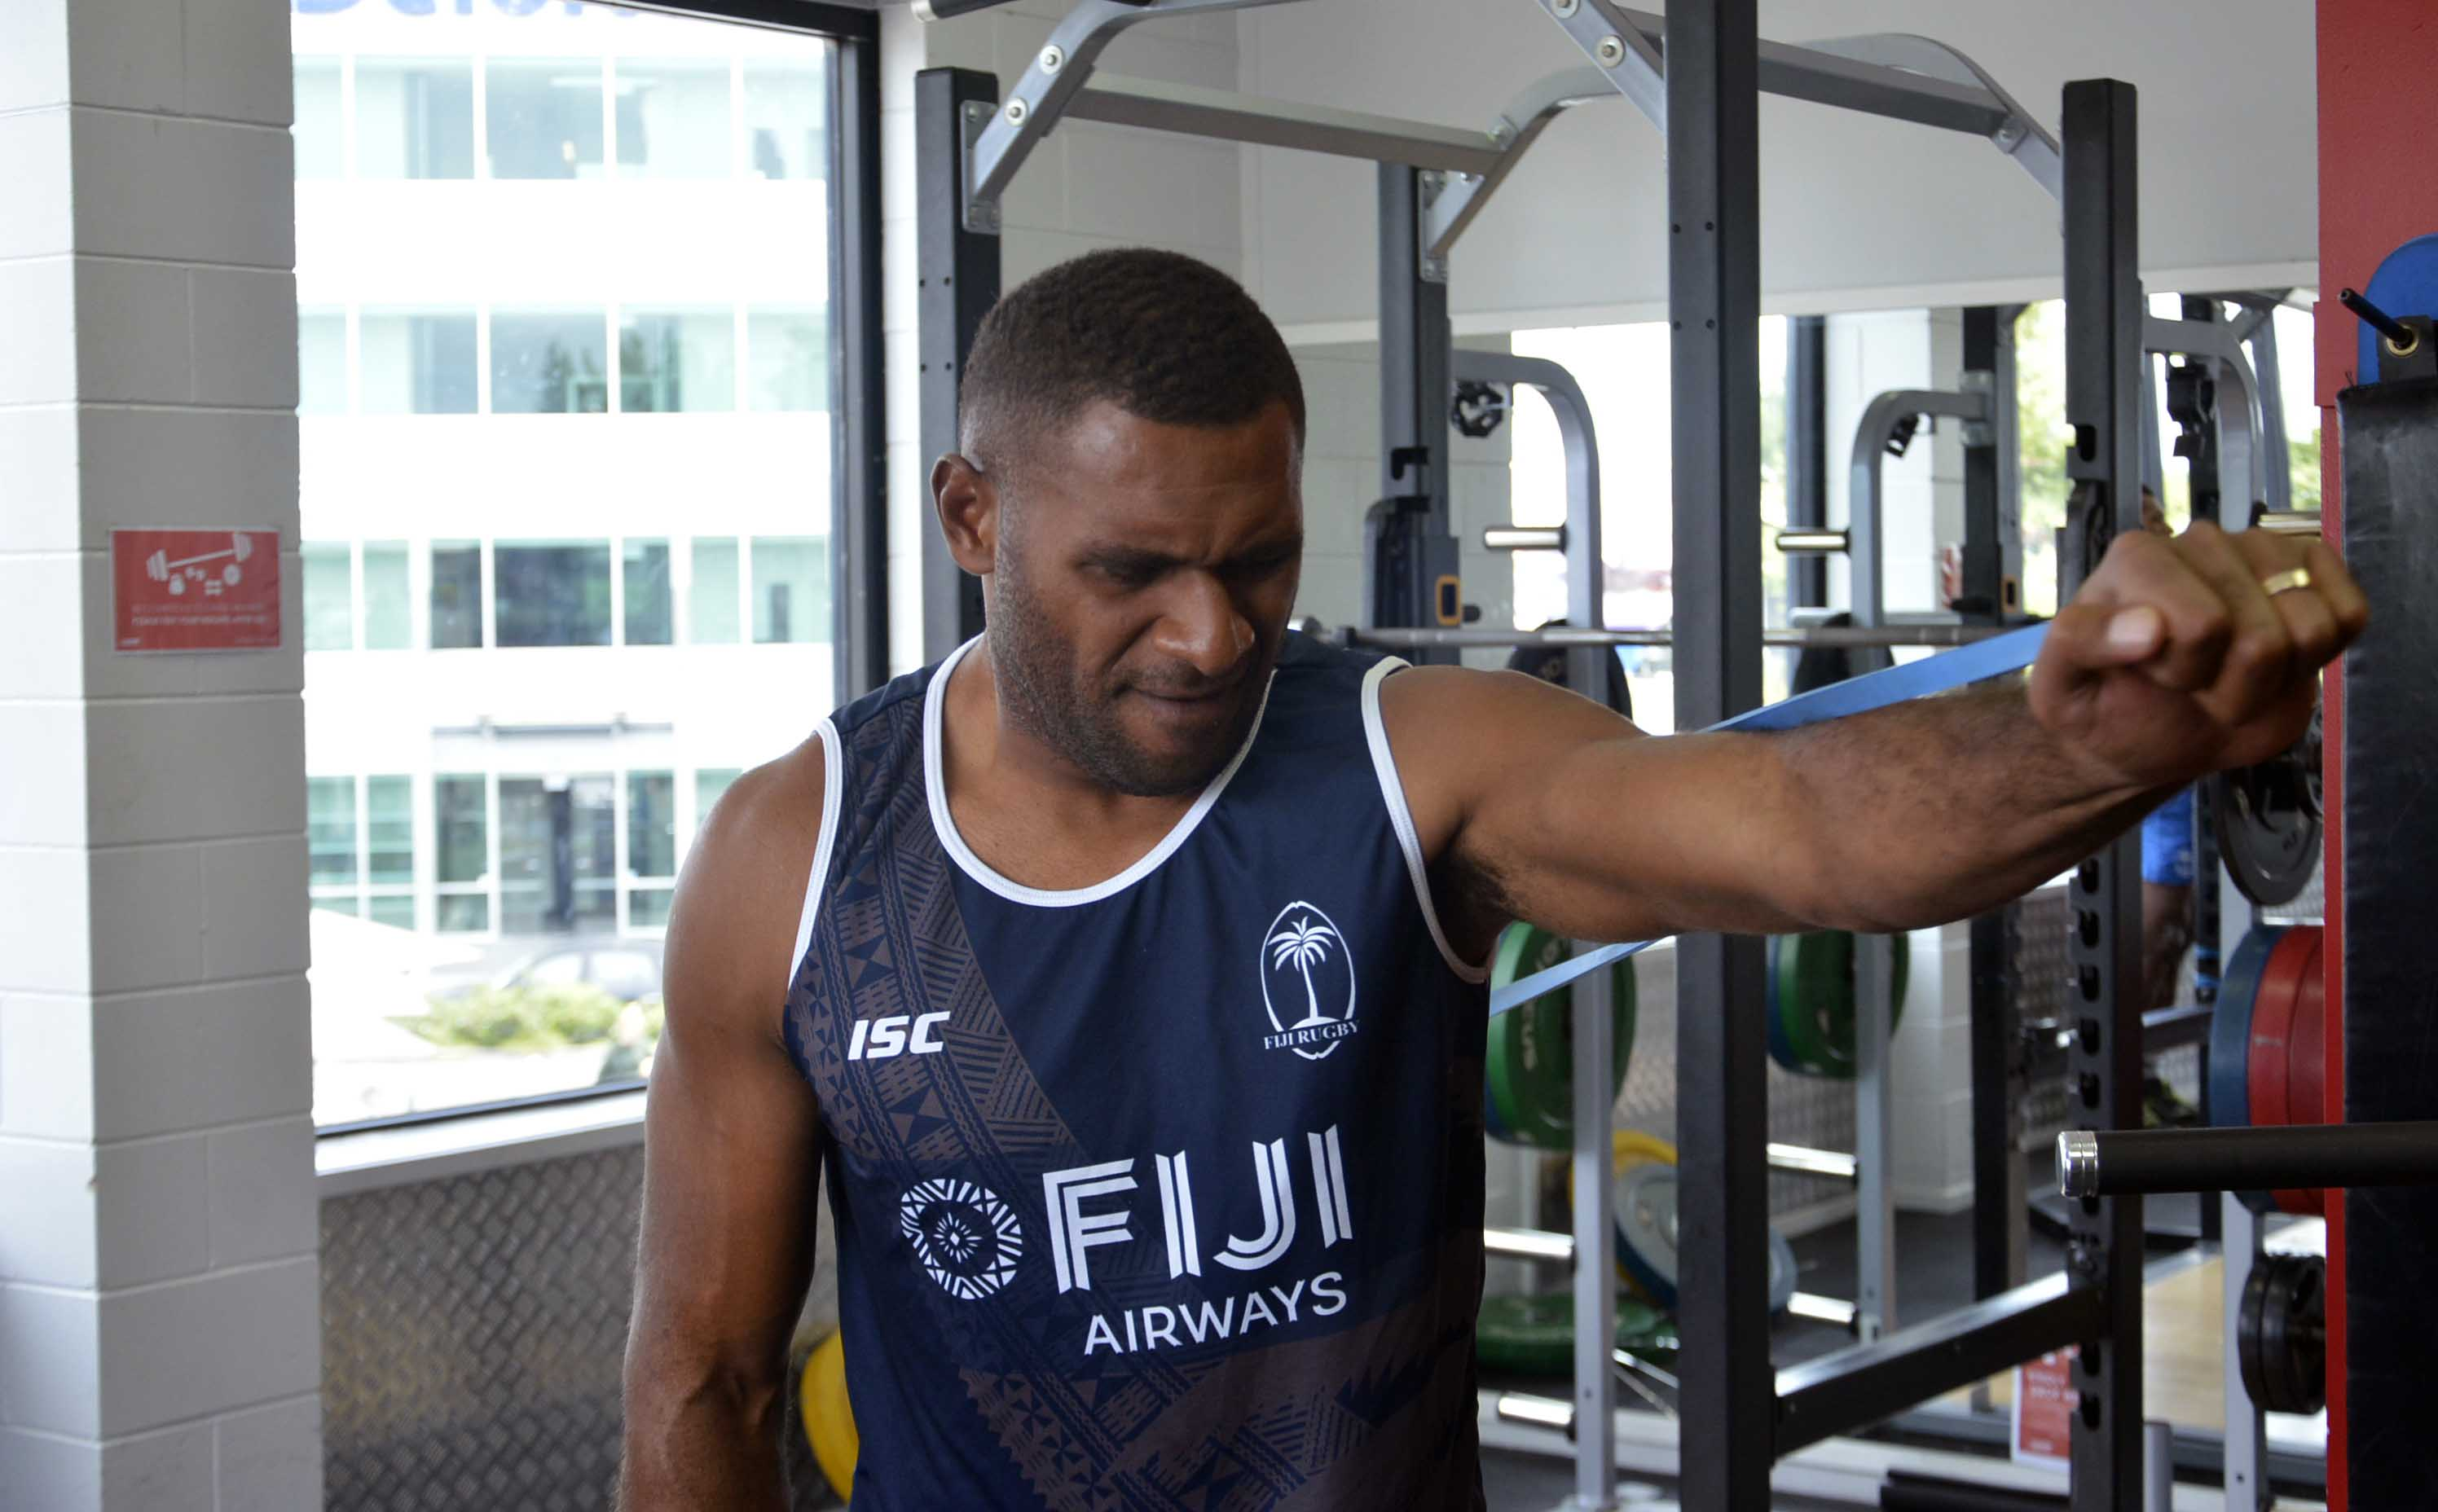 Jasa Veremalua during training at fastlane Fitness gym at Hamilton, New Zealand yesterday. Picture: BALJEET SINGH